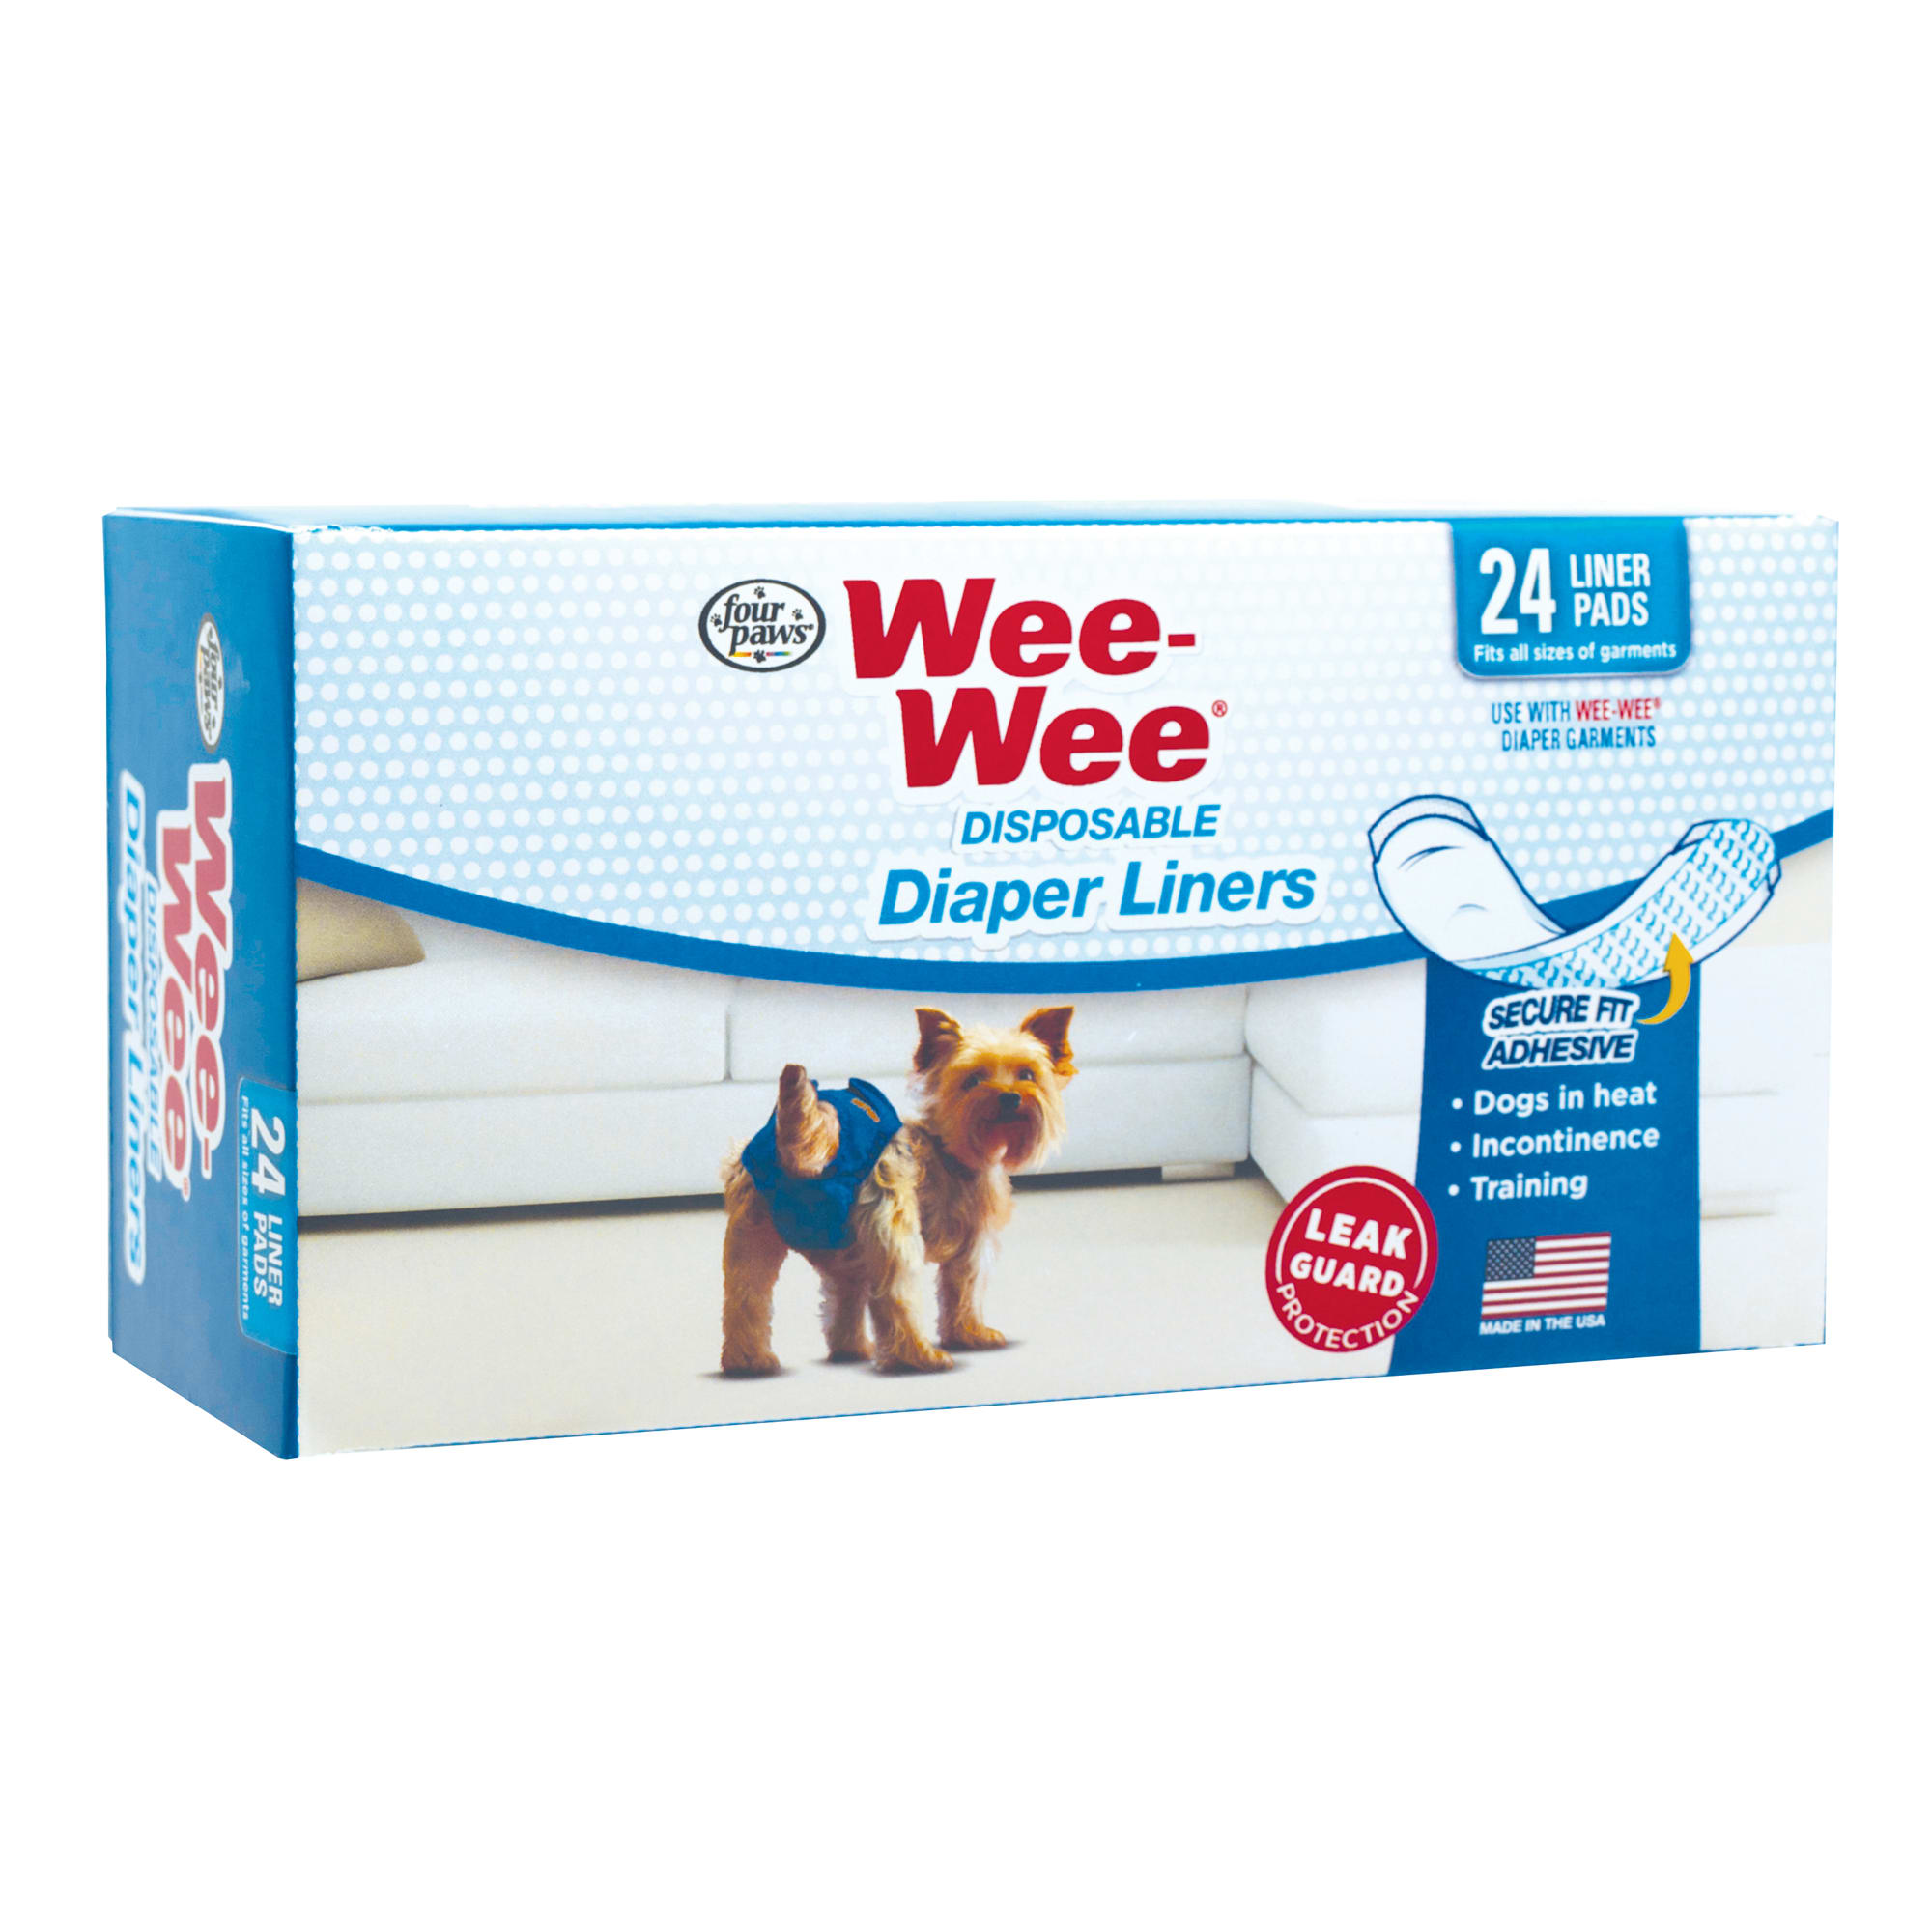 Wee-Wee Disposable Diaper Liners, 24 Pack